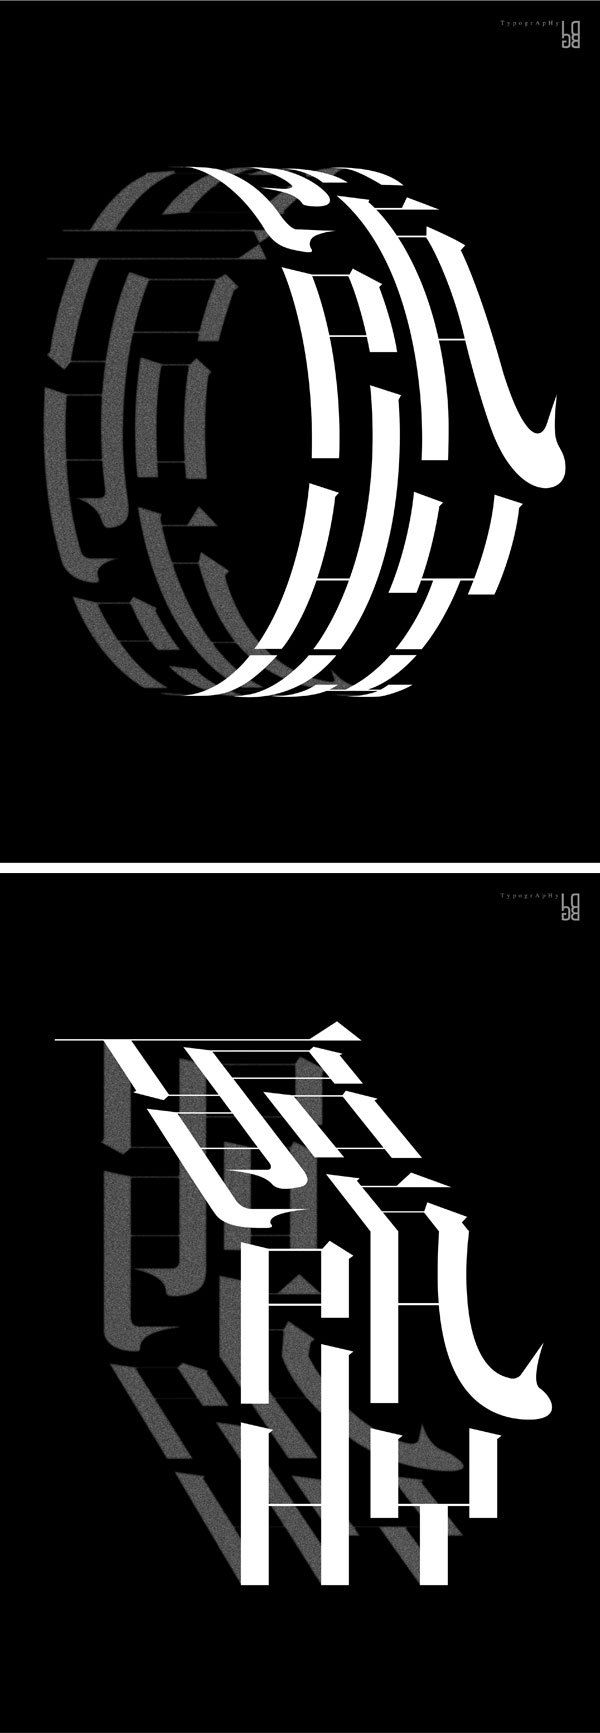 Poster design typography - Chinese And Asian Graphic Design Asian Typography Poster _ Qing Zhao